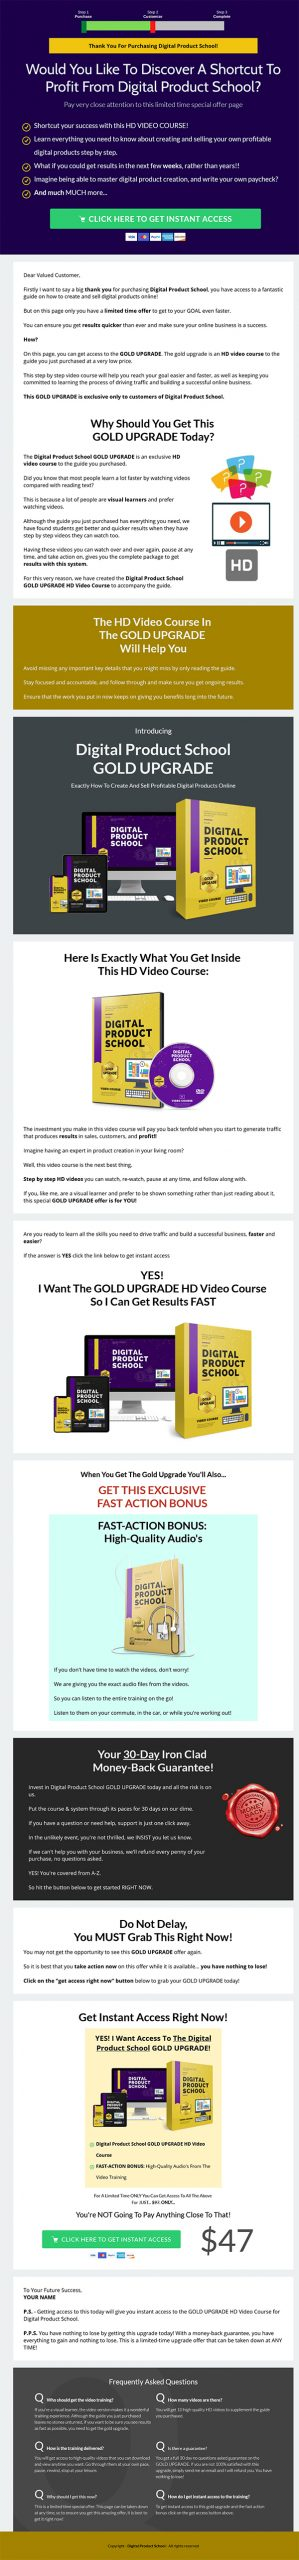 Digital Product School Ebook and Videos MRR